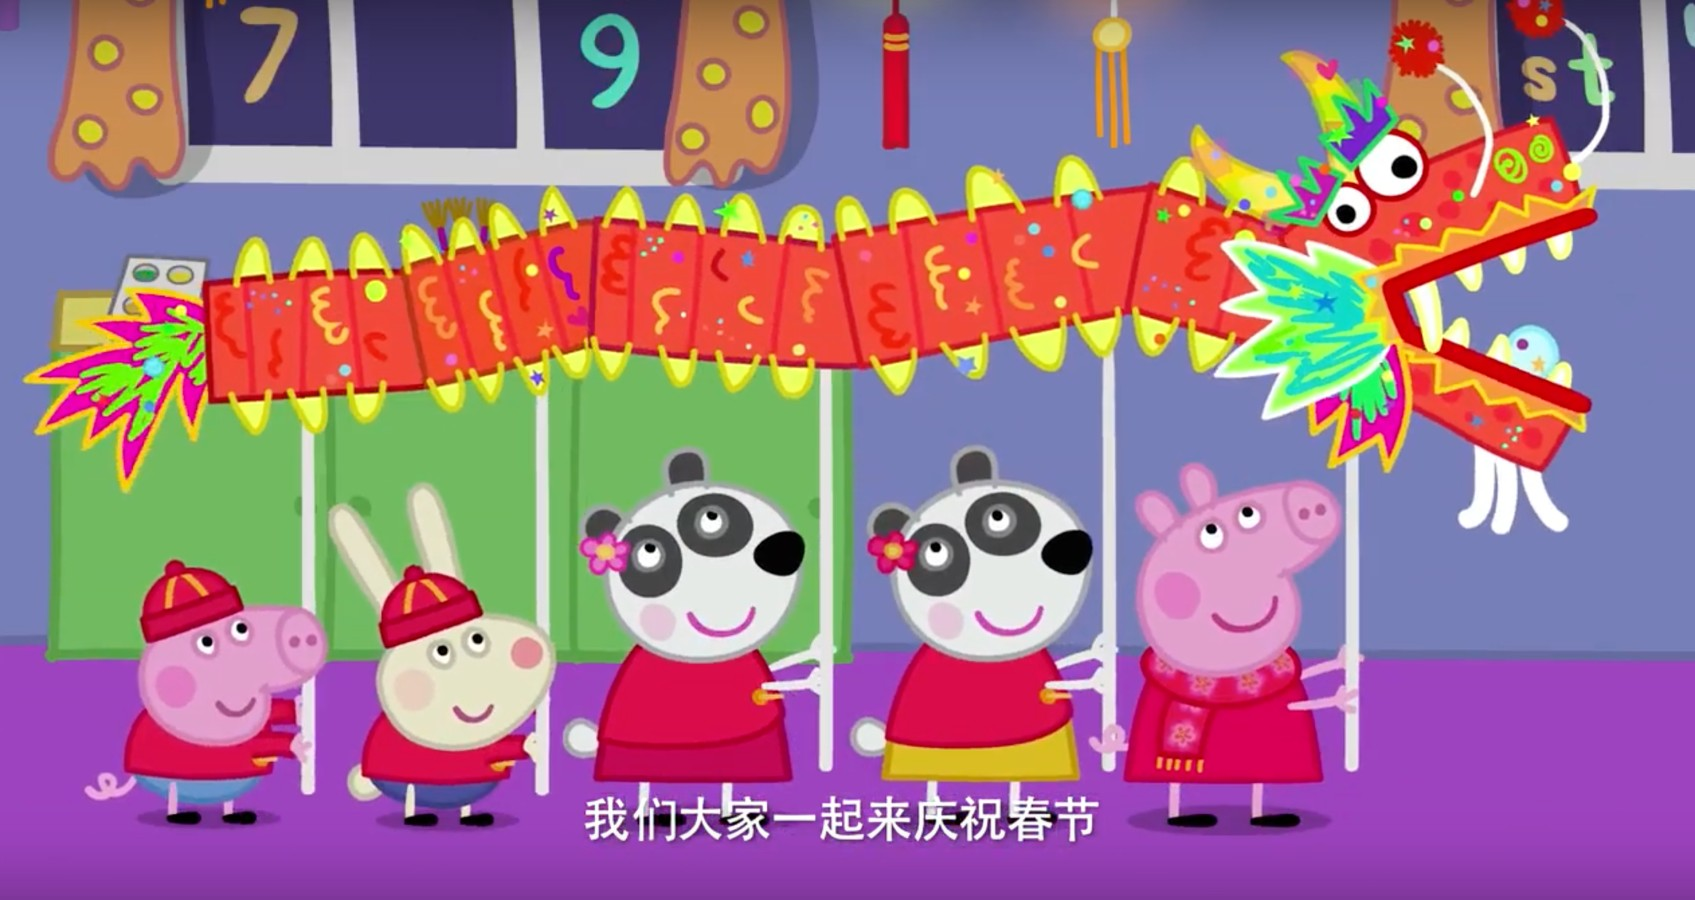 Peppa Pigs Chinese New Year Trailer Charms Its Way Through China